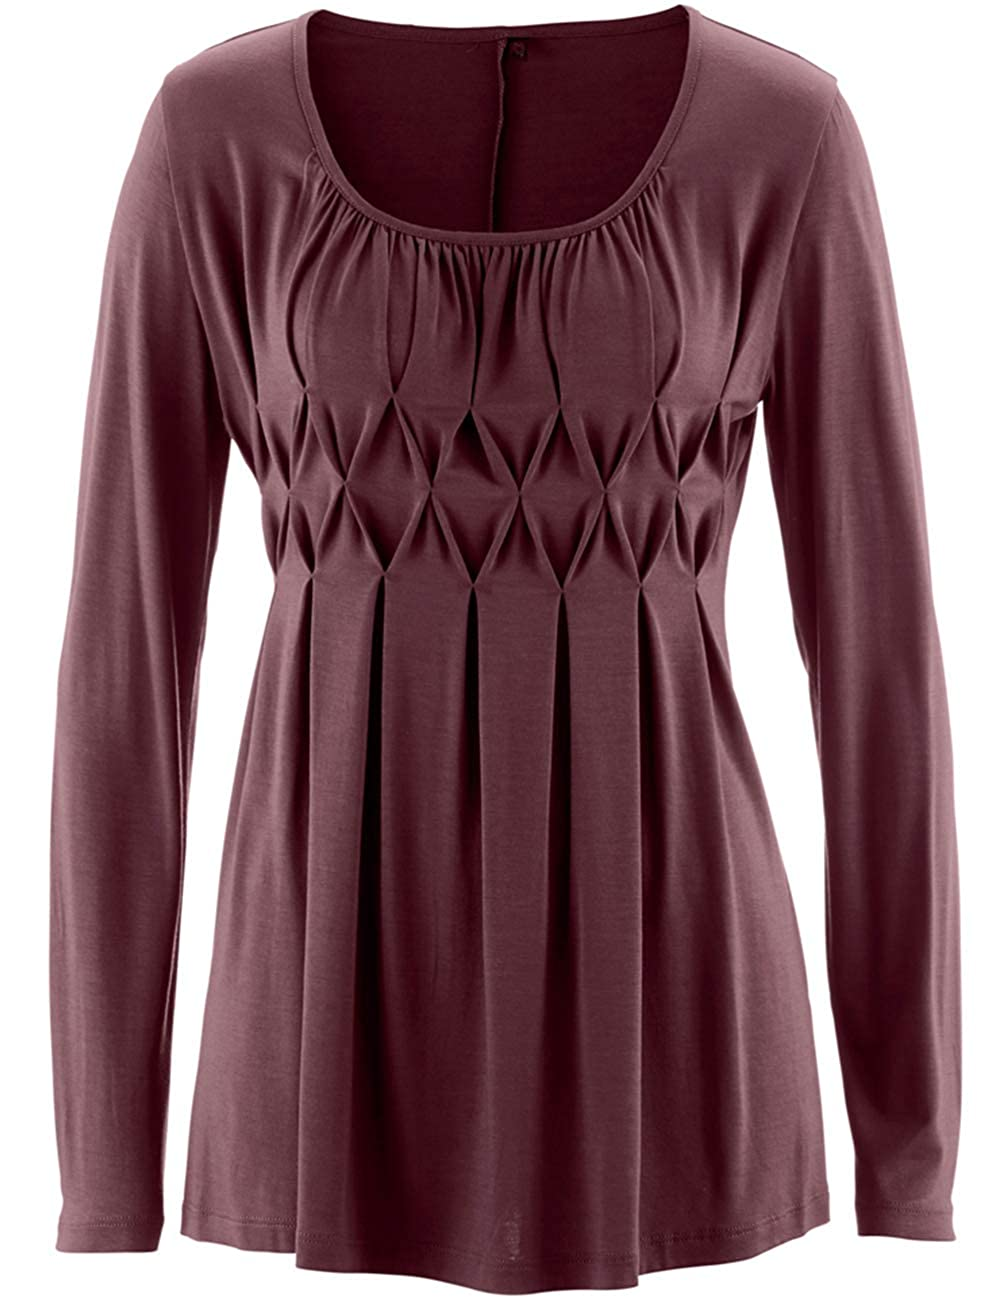 Womens Tunic Tops Smocked Round Neck Sweatshirts Clearance Teen Girls Shirt Pullover Jumper Tops Blouse Sweater Jacket